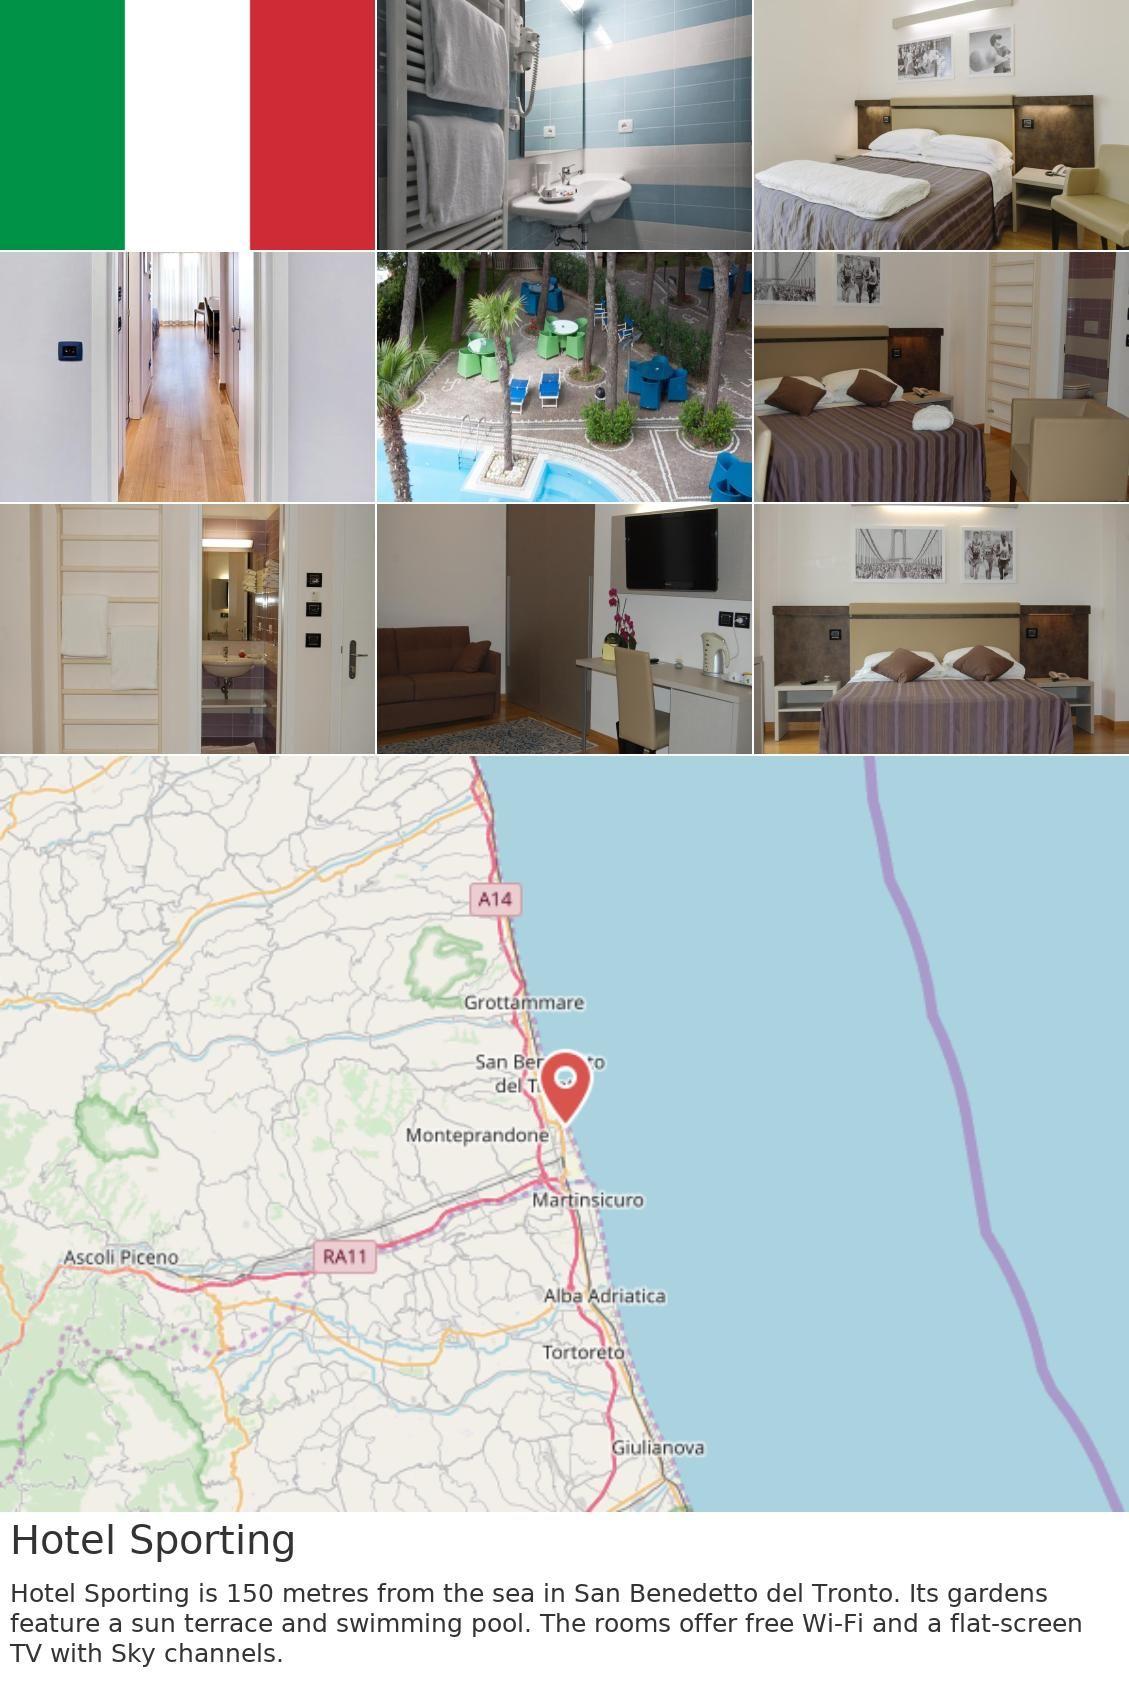 Europe Italy San Benedetto Del Tronto Hotel Sporting Hotel Sporting Is 150 Metres From The Sea In San Benedetto Del Tronto Its Gardens Feature A Sun Terrac